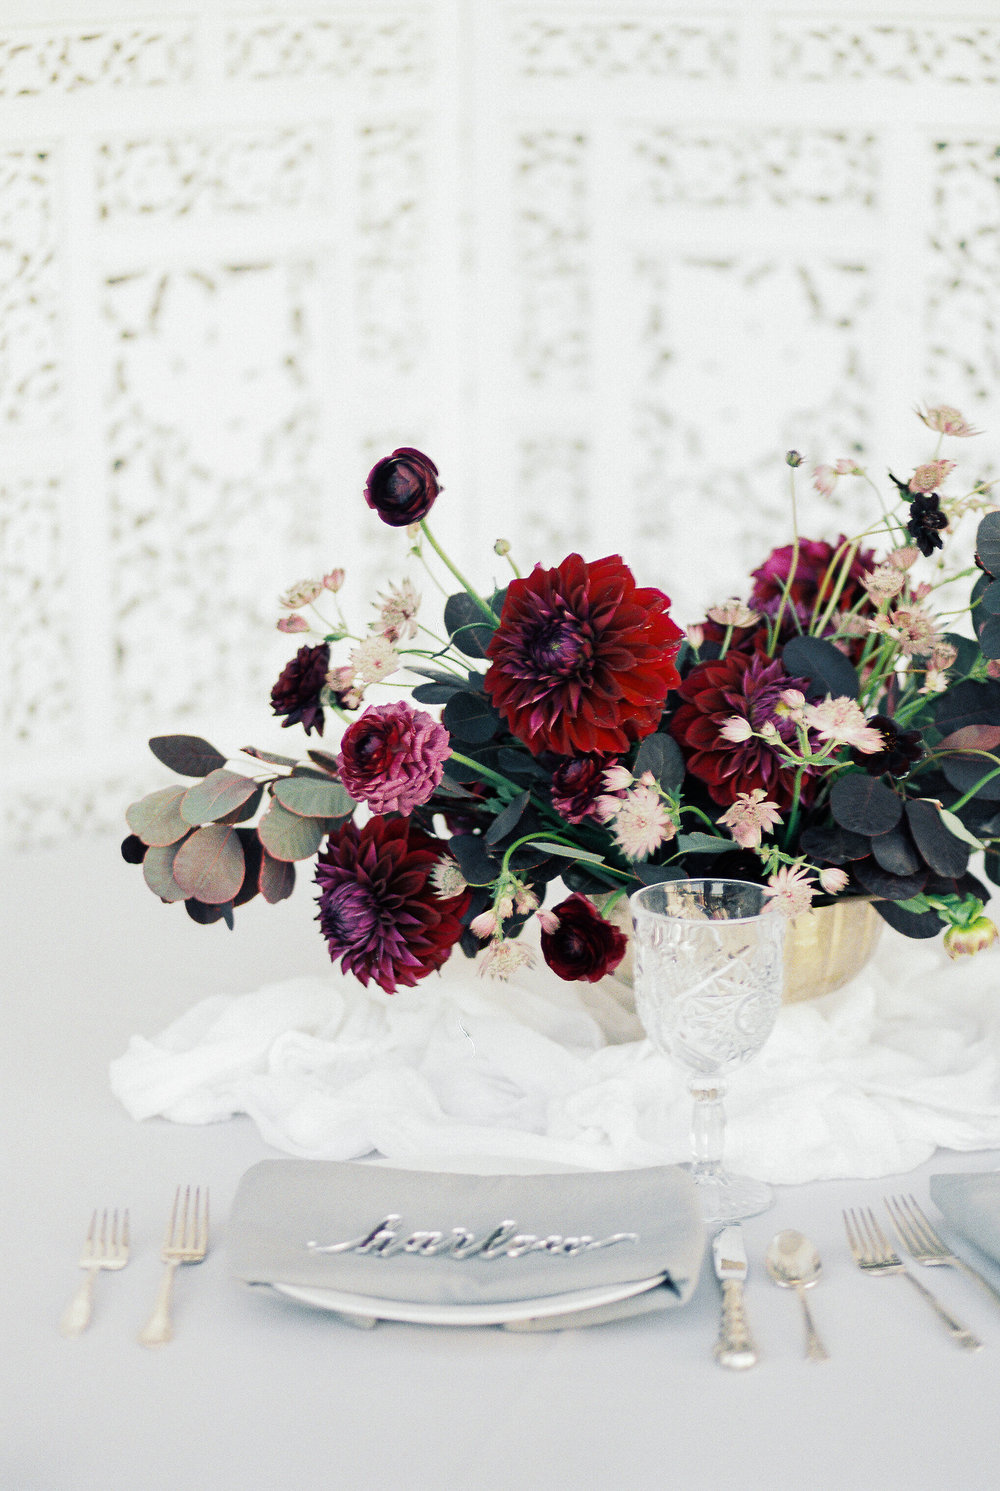 Georgia-Ruth-Photography-Flat-Lays-Table-Details-59.jpg